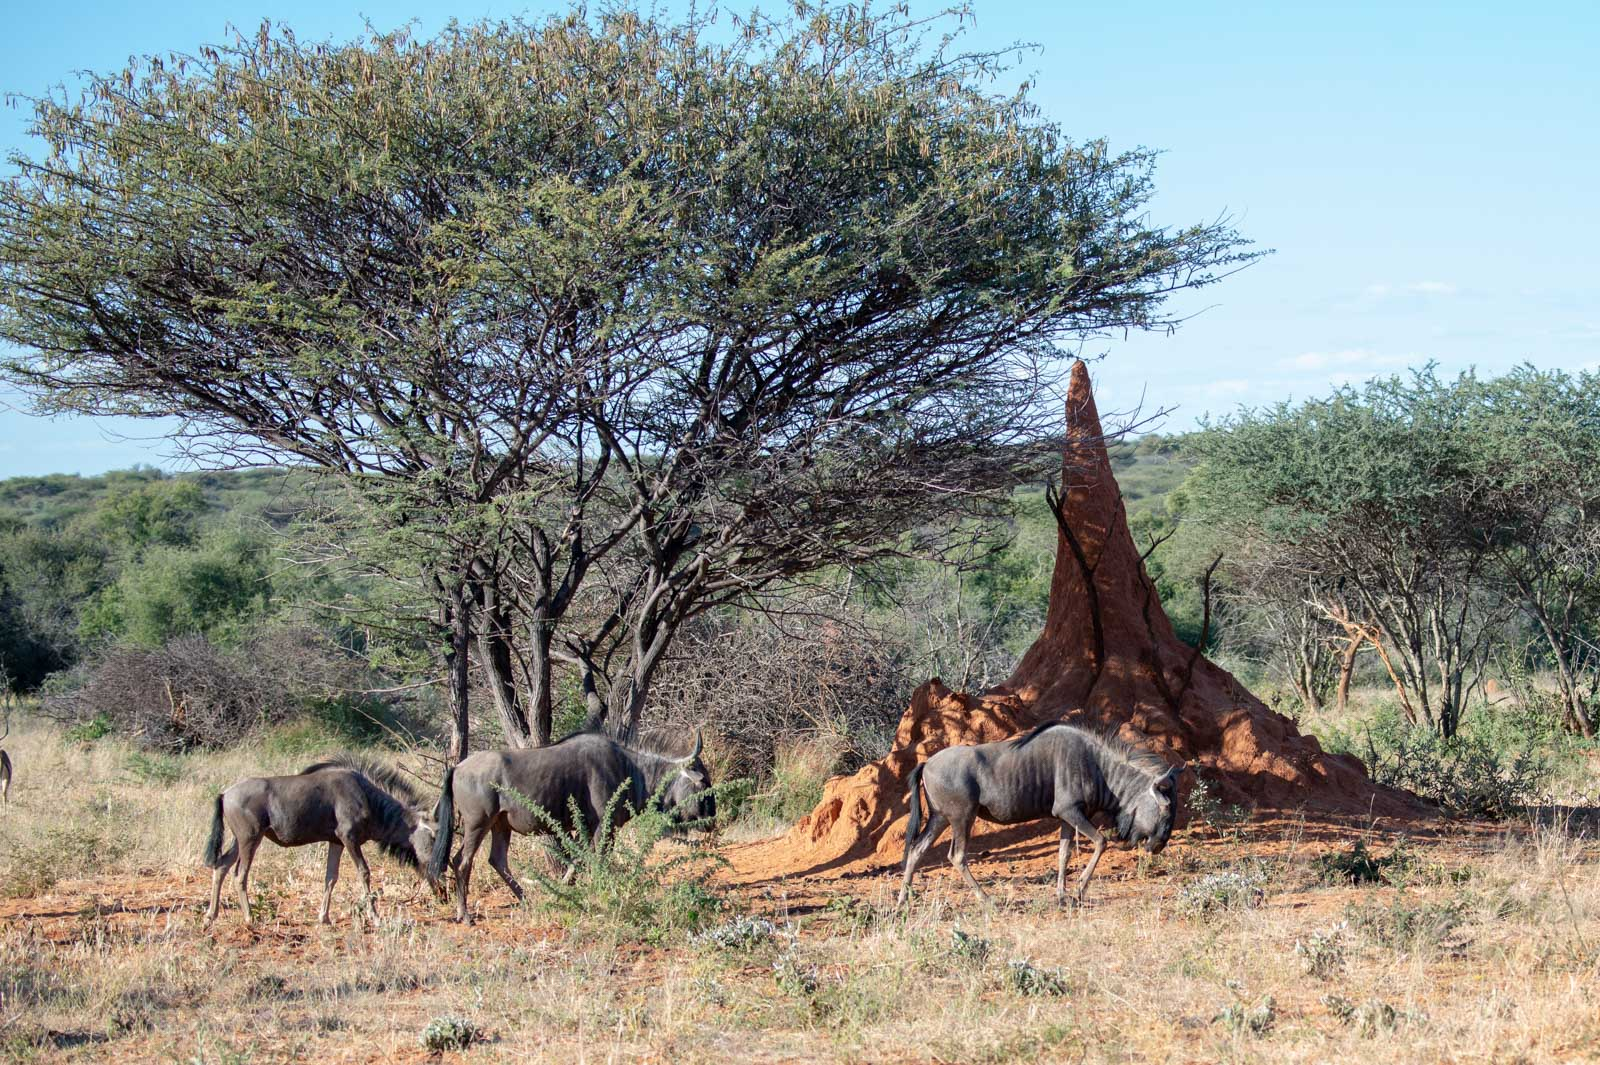 Namibia_okonjima wildebeest and termite mound-0121329.jpg